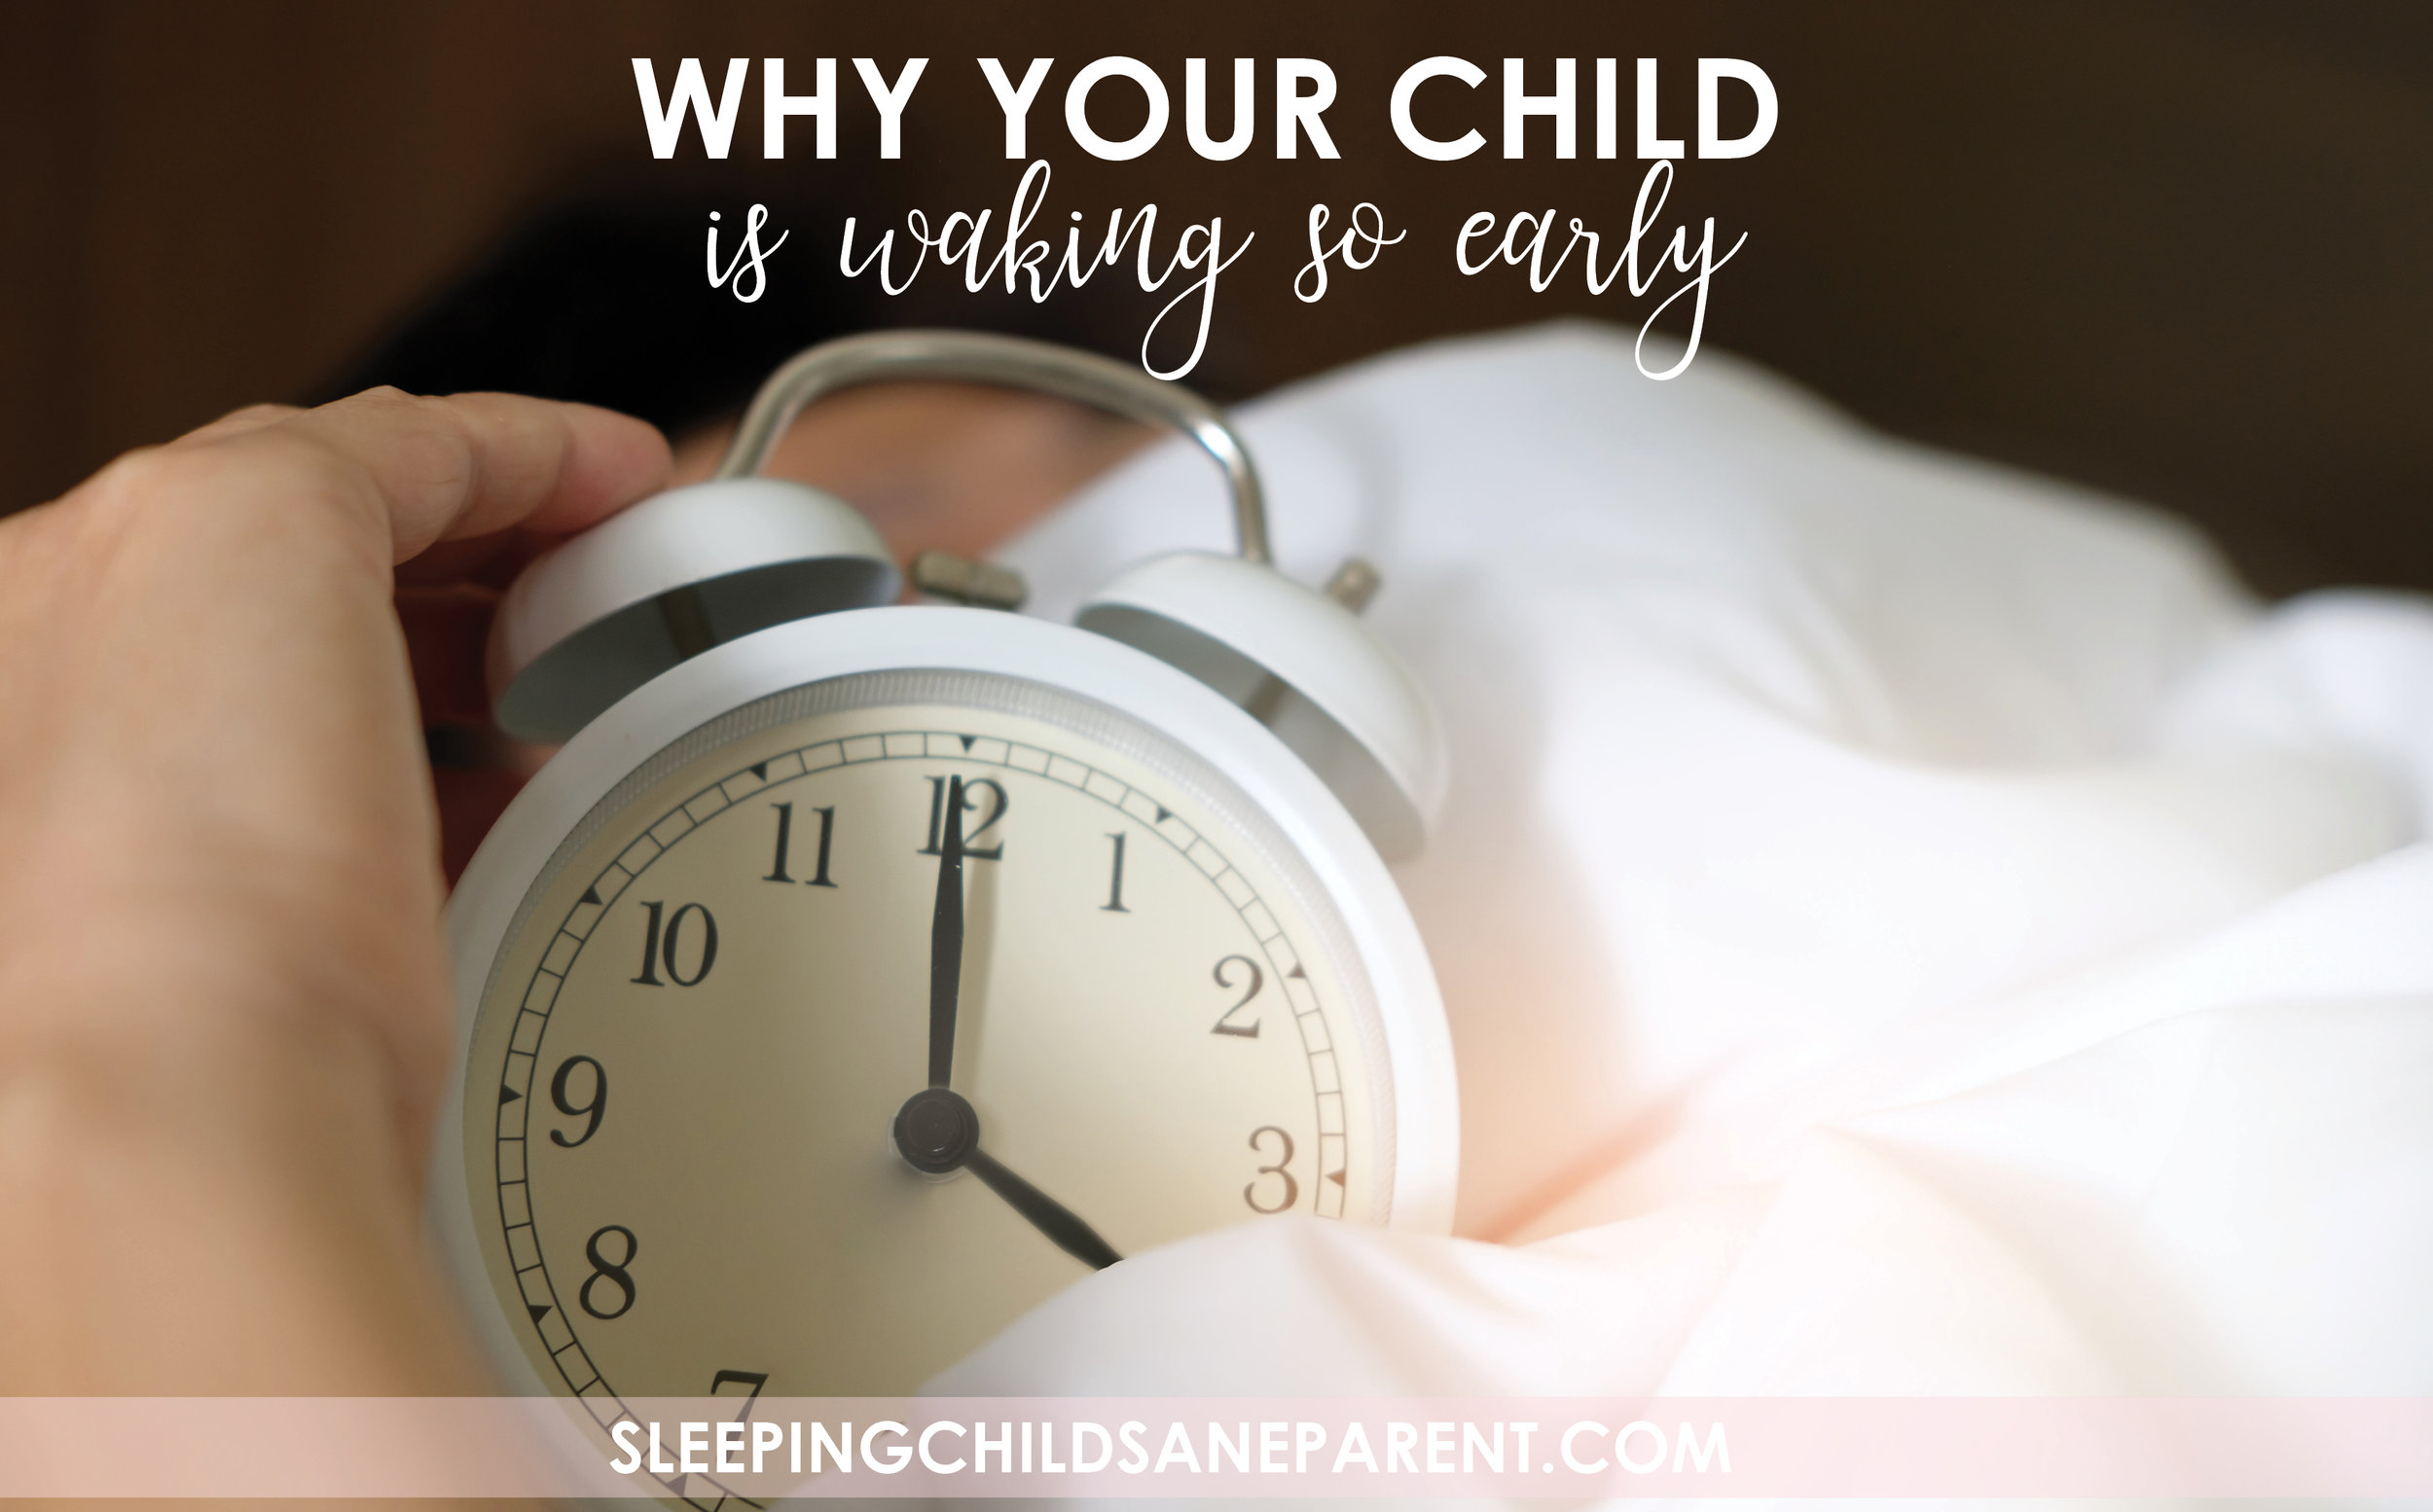 Is your child waking you up in the wee hours of the morning? Check out this blog post to find out WHY and to see what you can do to sleep past 6am again!